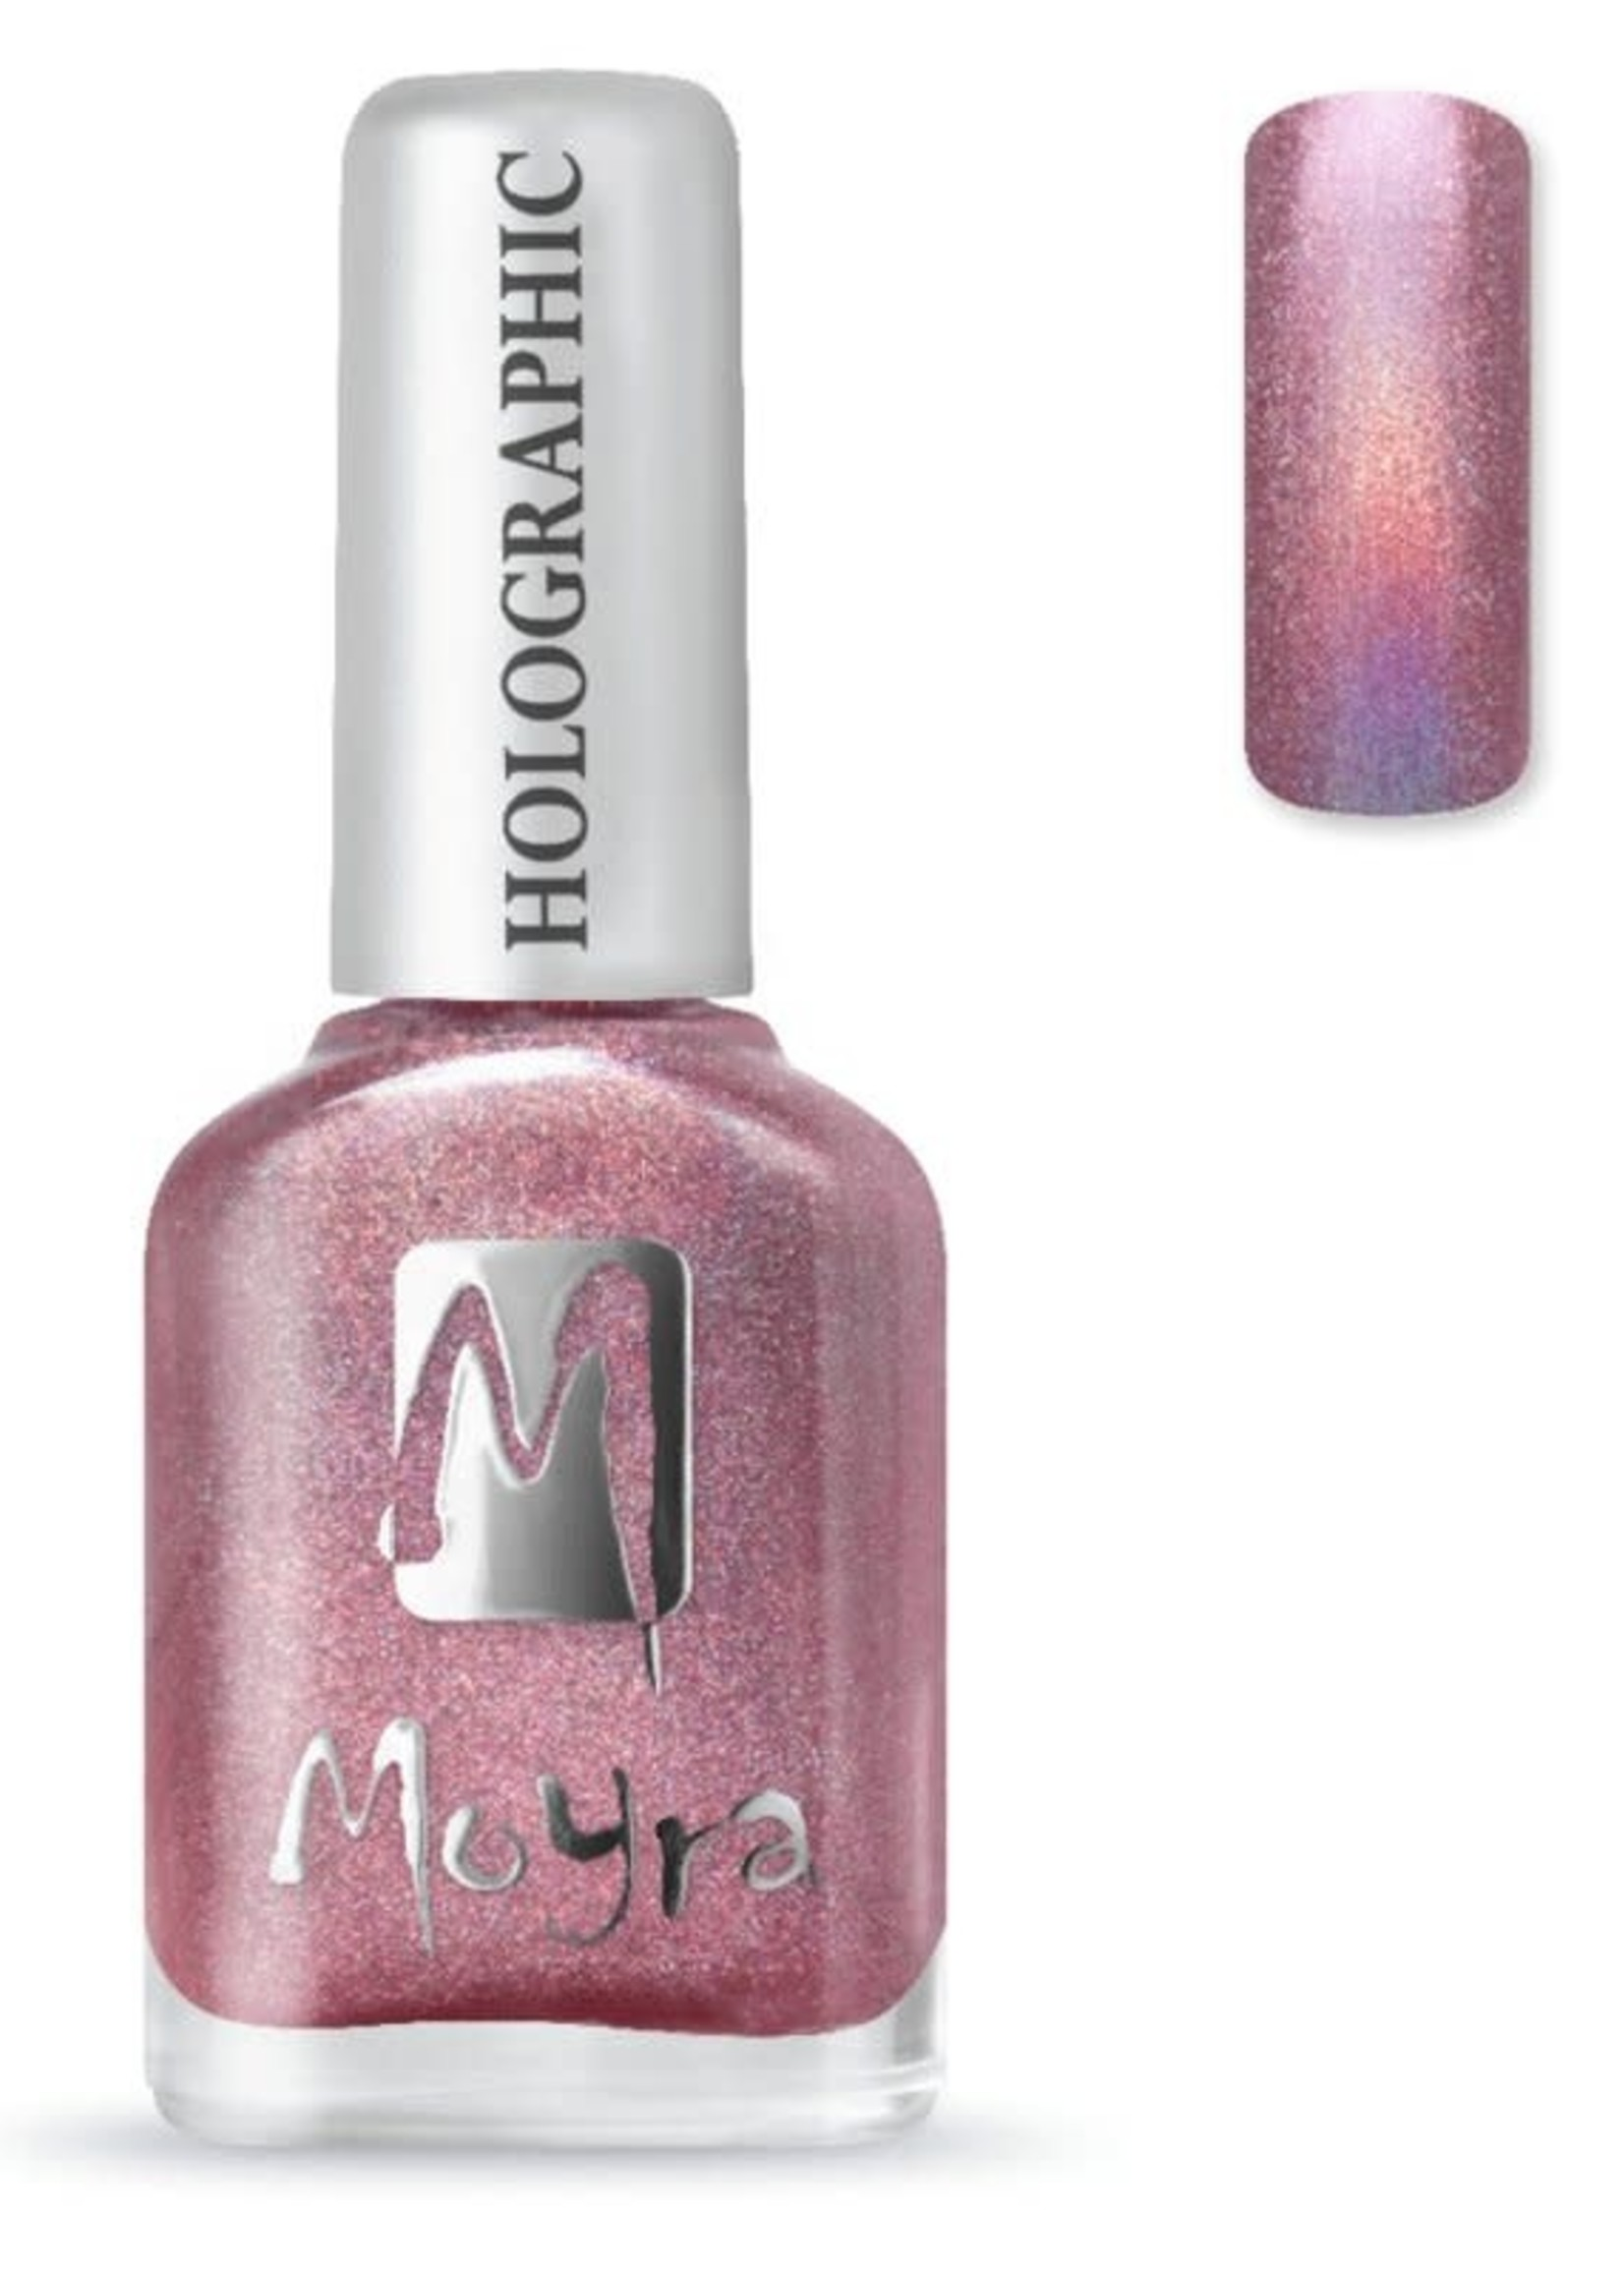 Moyra Moyra Holographic effect nail polish 256 Orion